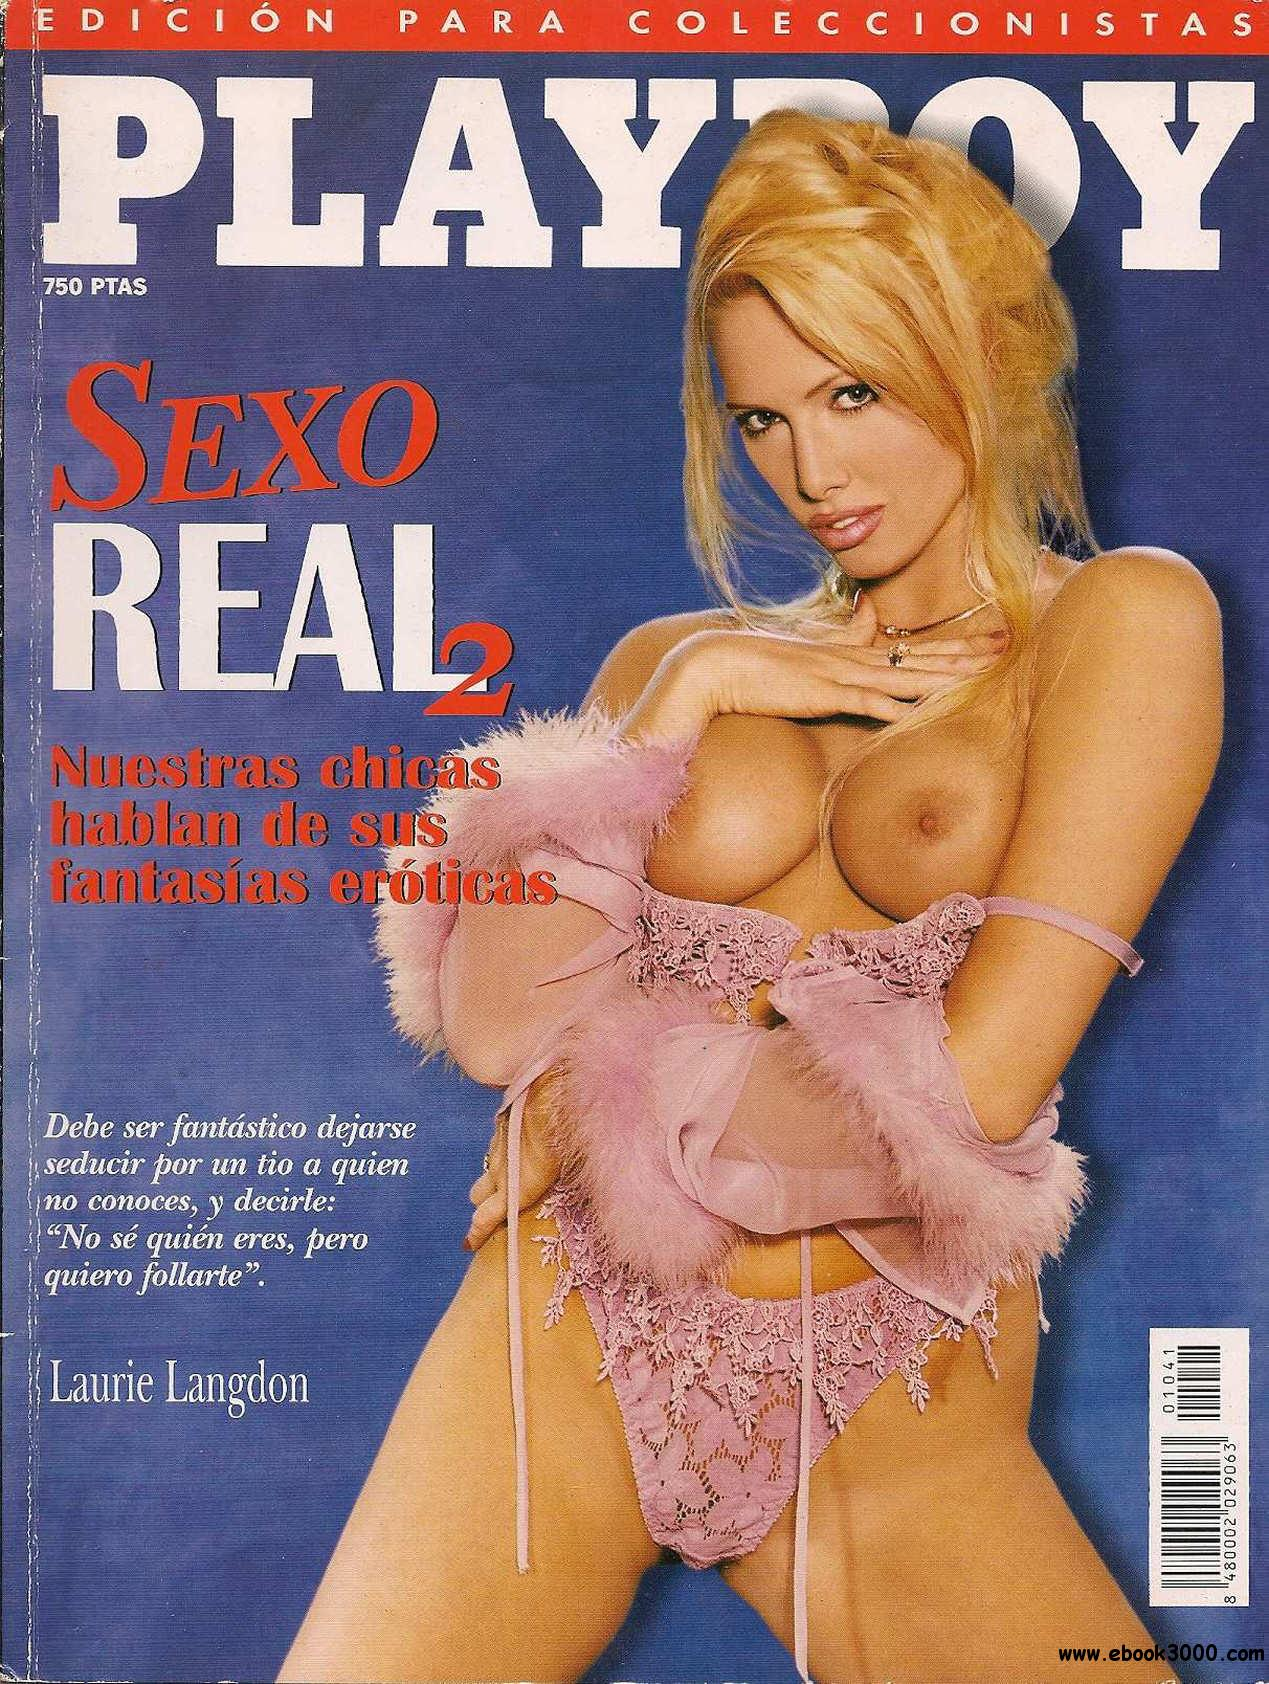 Playboy Spain - Especial Edicion 41 - Sexo Real 2 free download